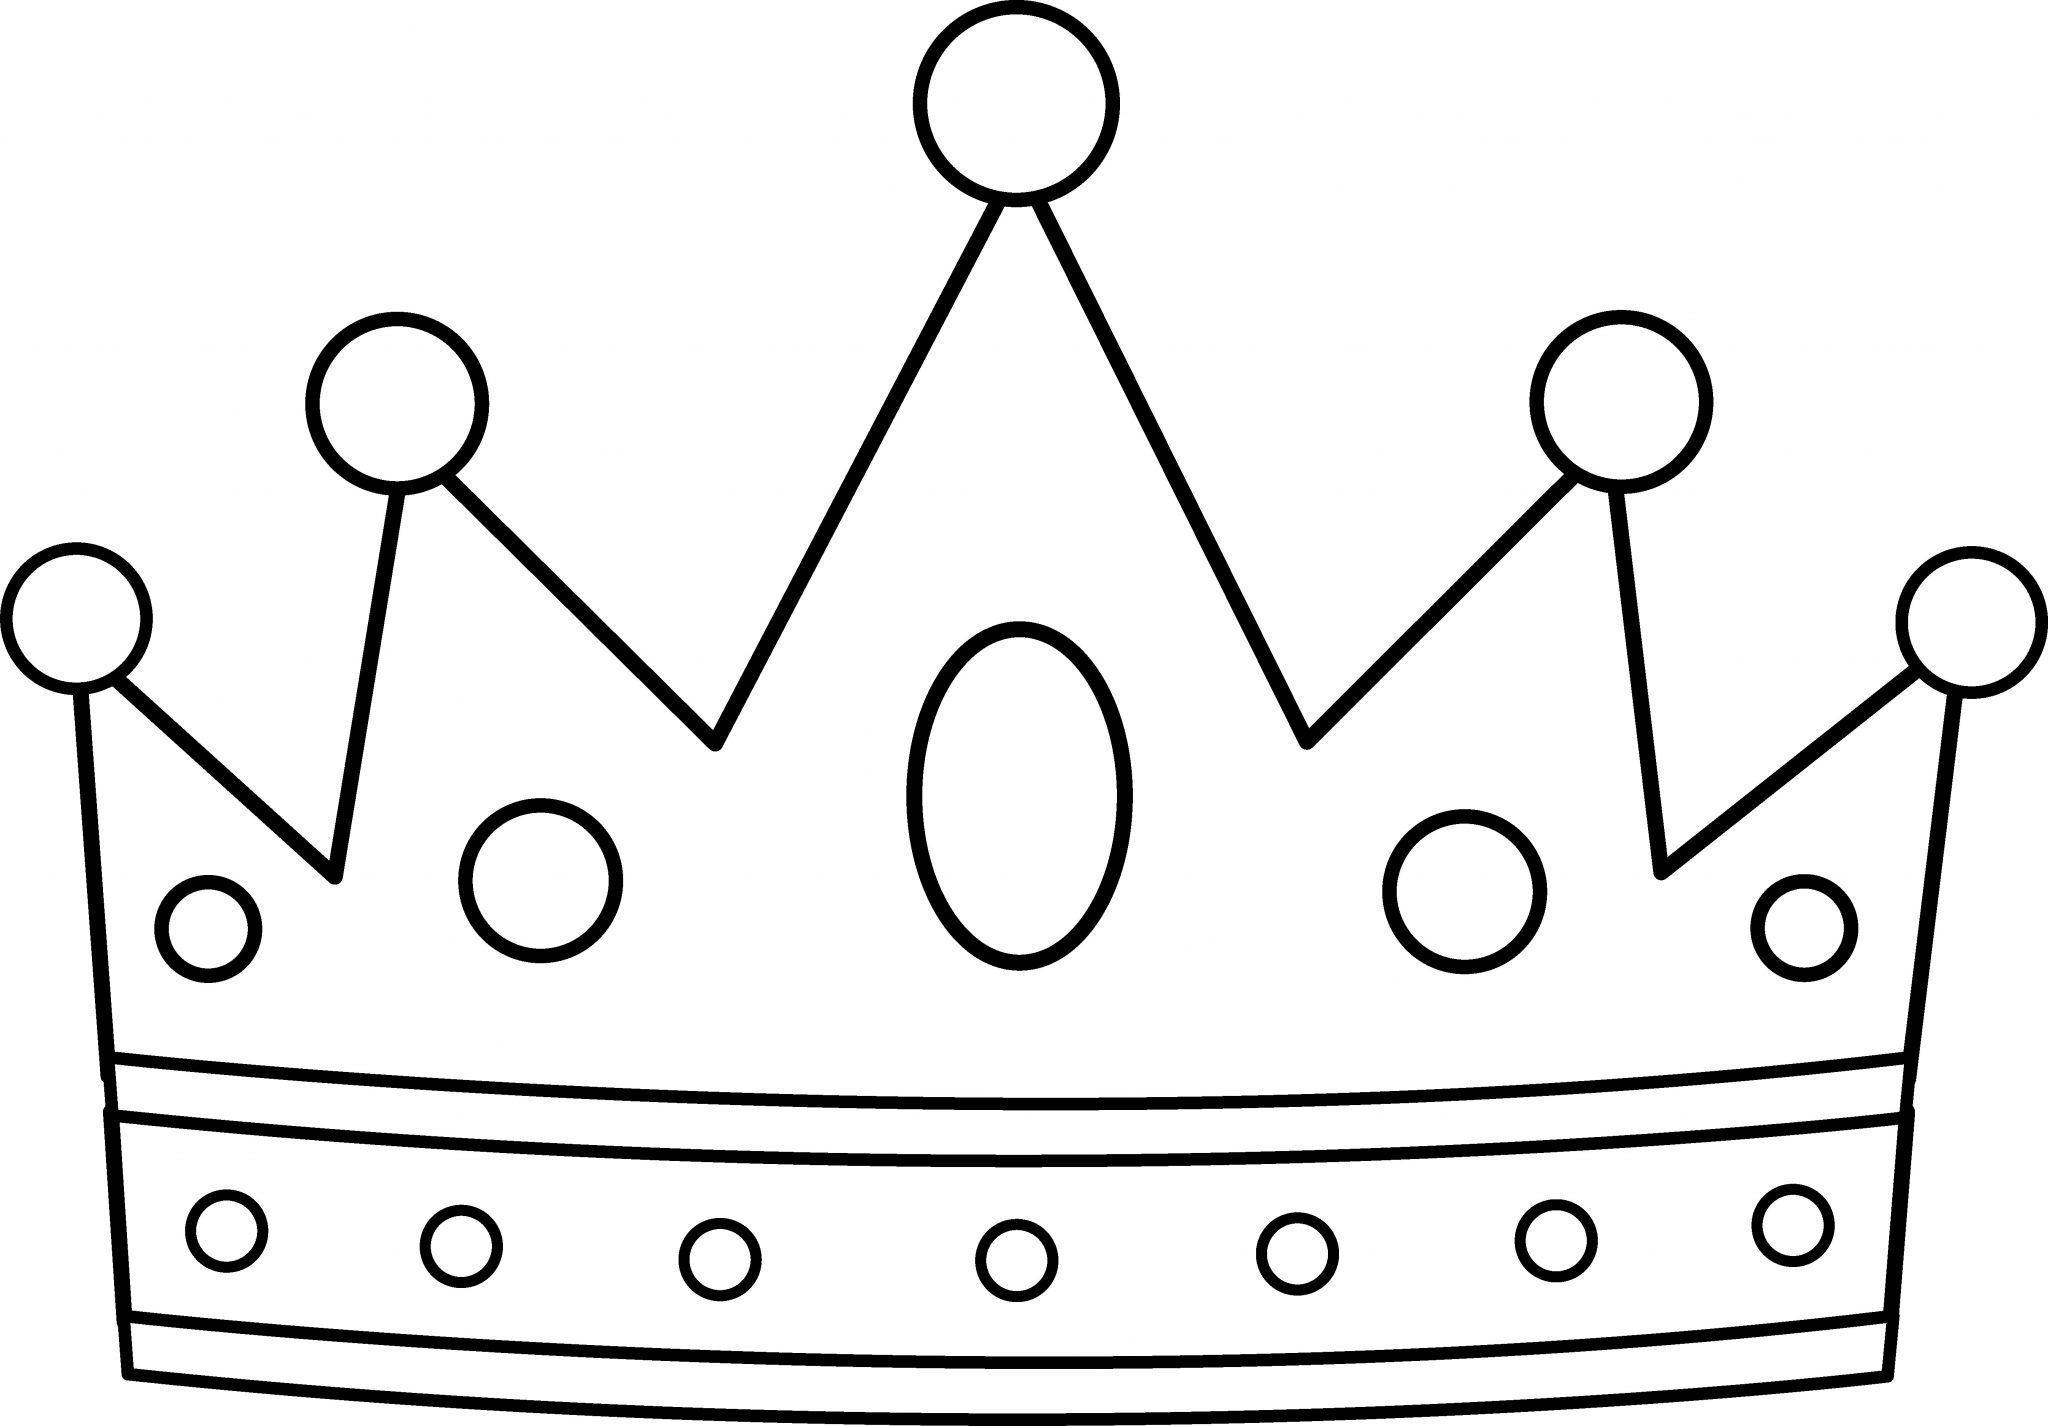 Print And Color Crown